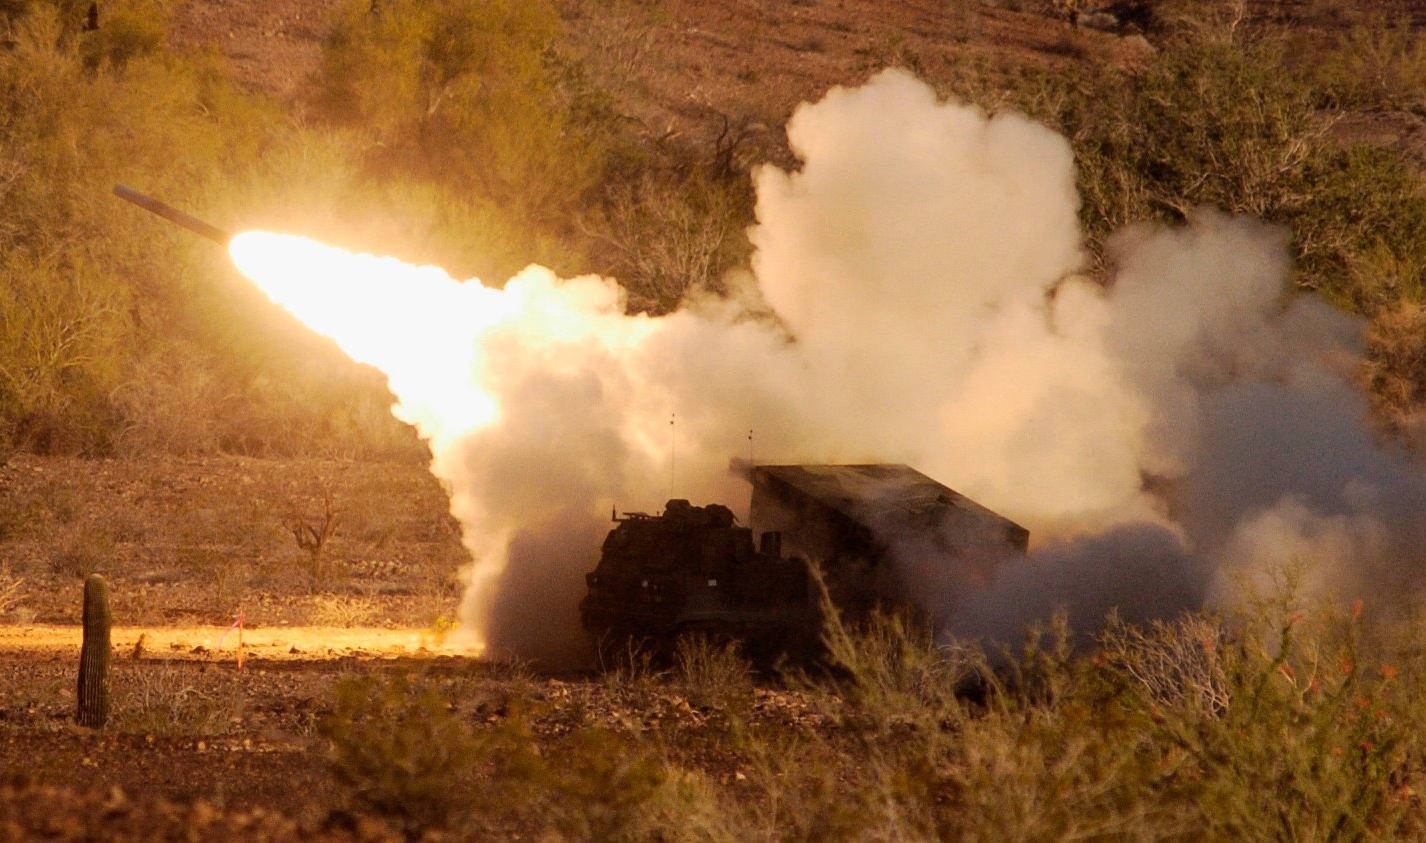 Test-firing an Army Multiple Launch Rocket System (MLRS) at Yuma Proving Ground